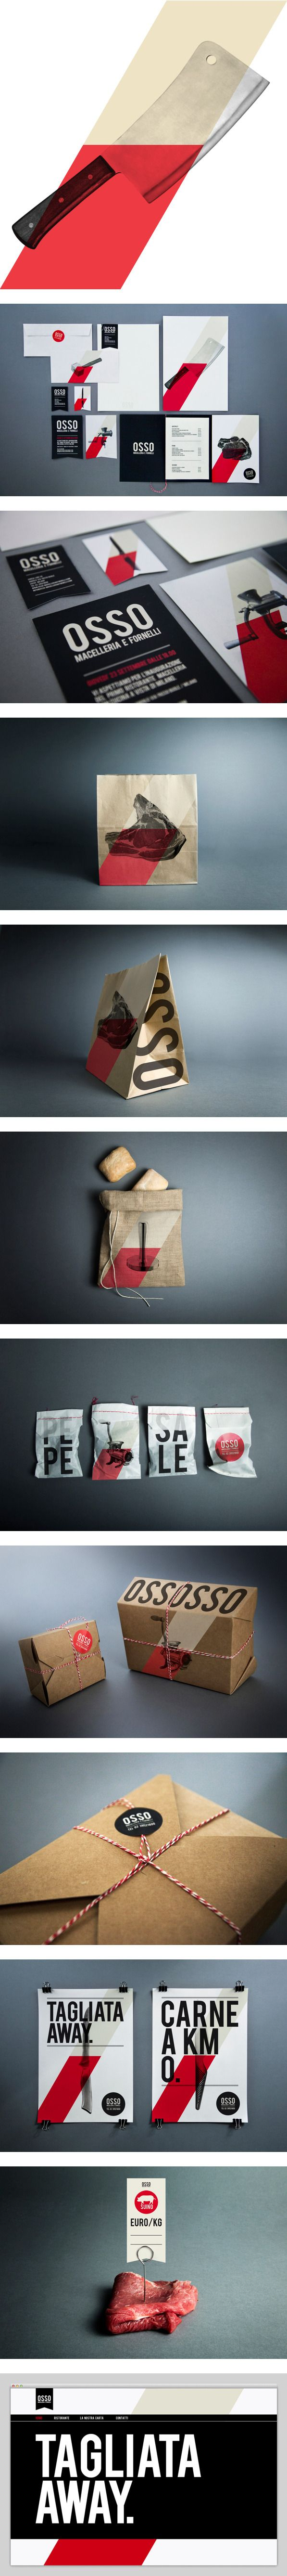 Time for lunch at Osso Macelleria & Fornelli by Luca Fontana #identity #packaging #branding PD